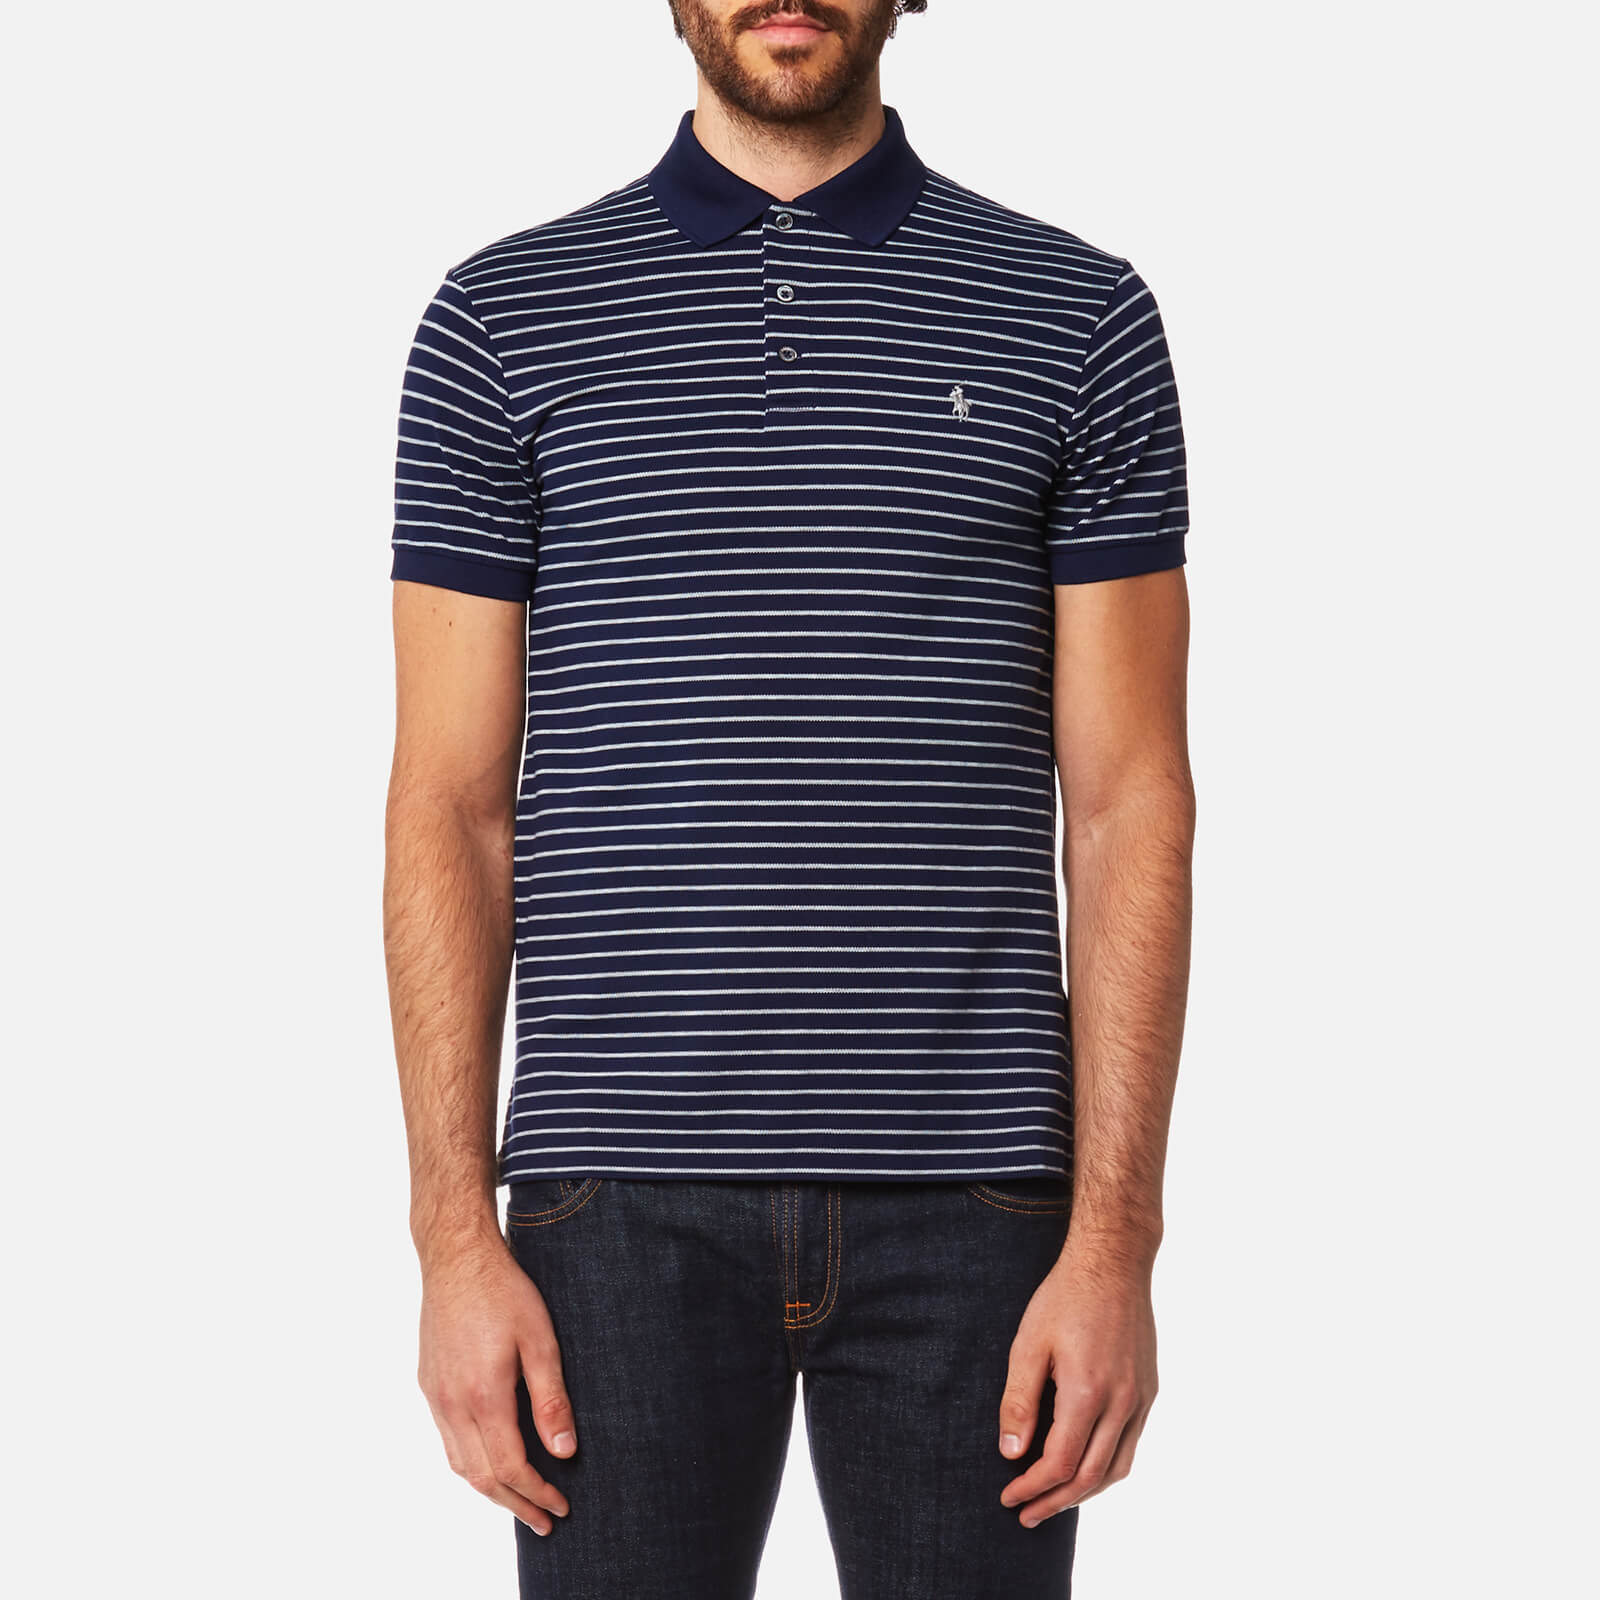 a4aadc95 Polo Ralph Lauren Men's Stretch Mesh Stripe Polo Shirt - French Navy/Andover  - Free UK Delivery over £50